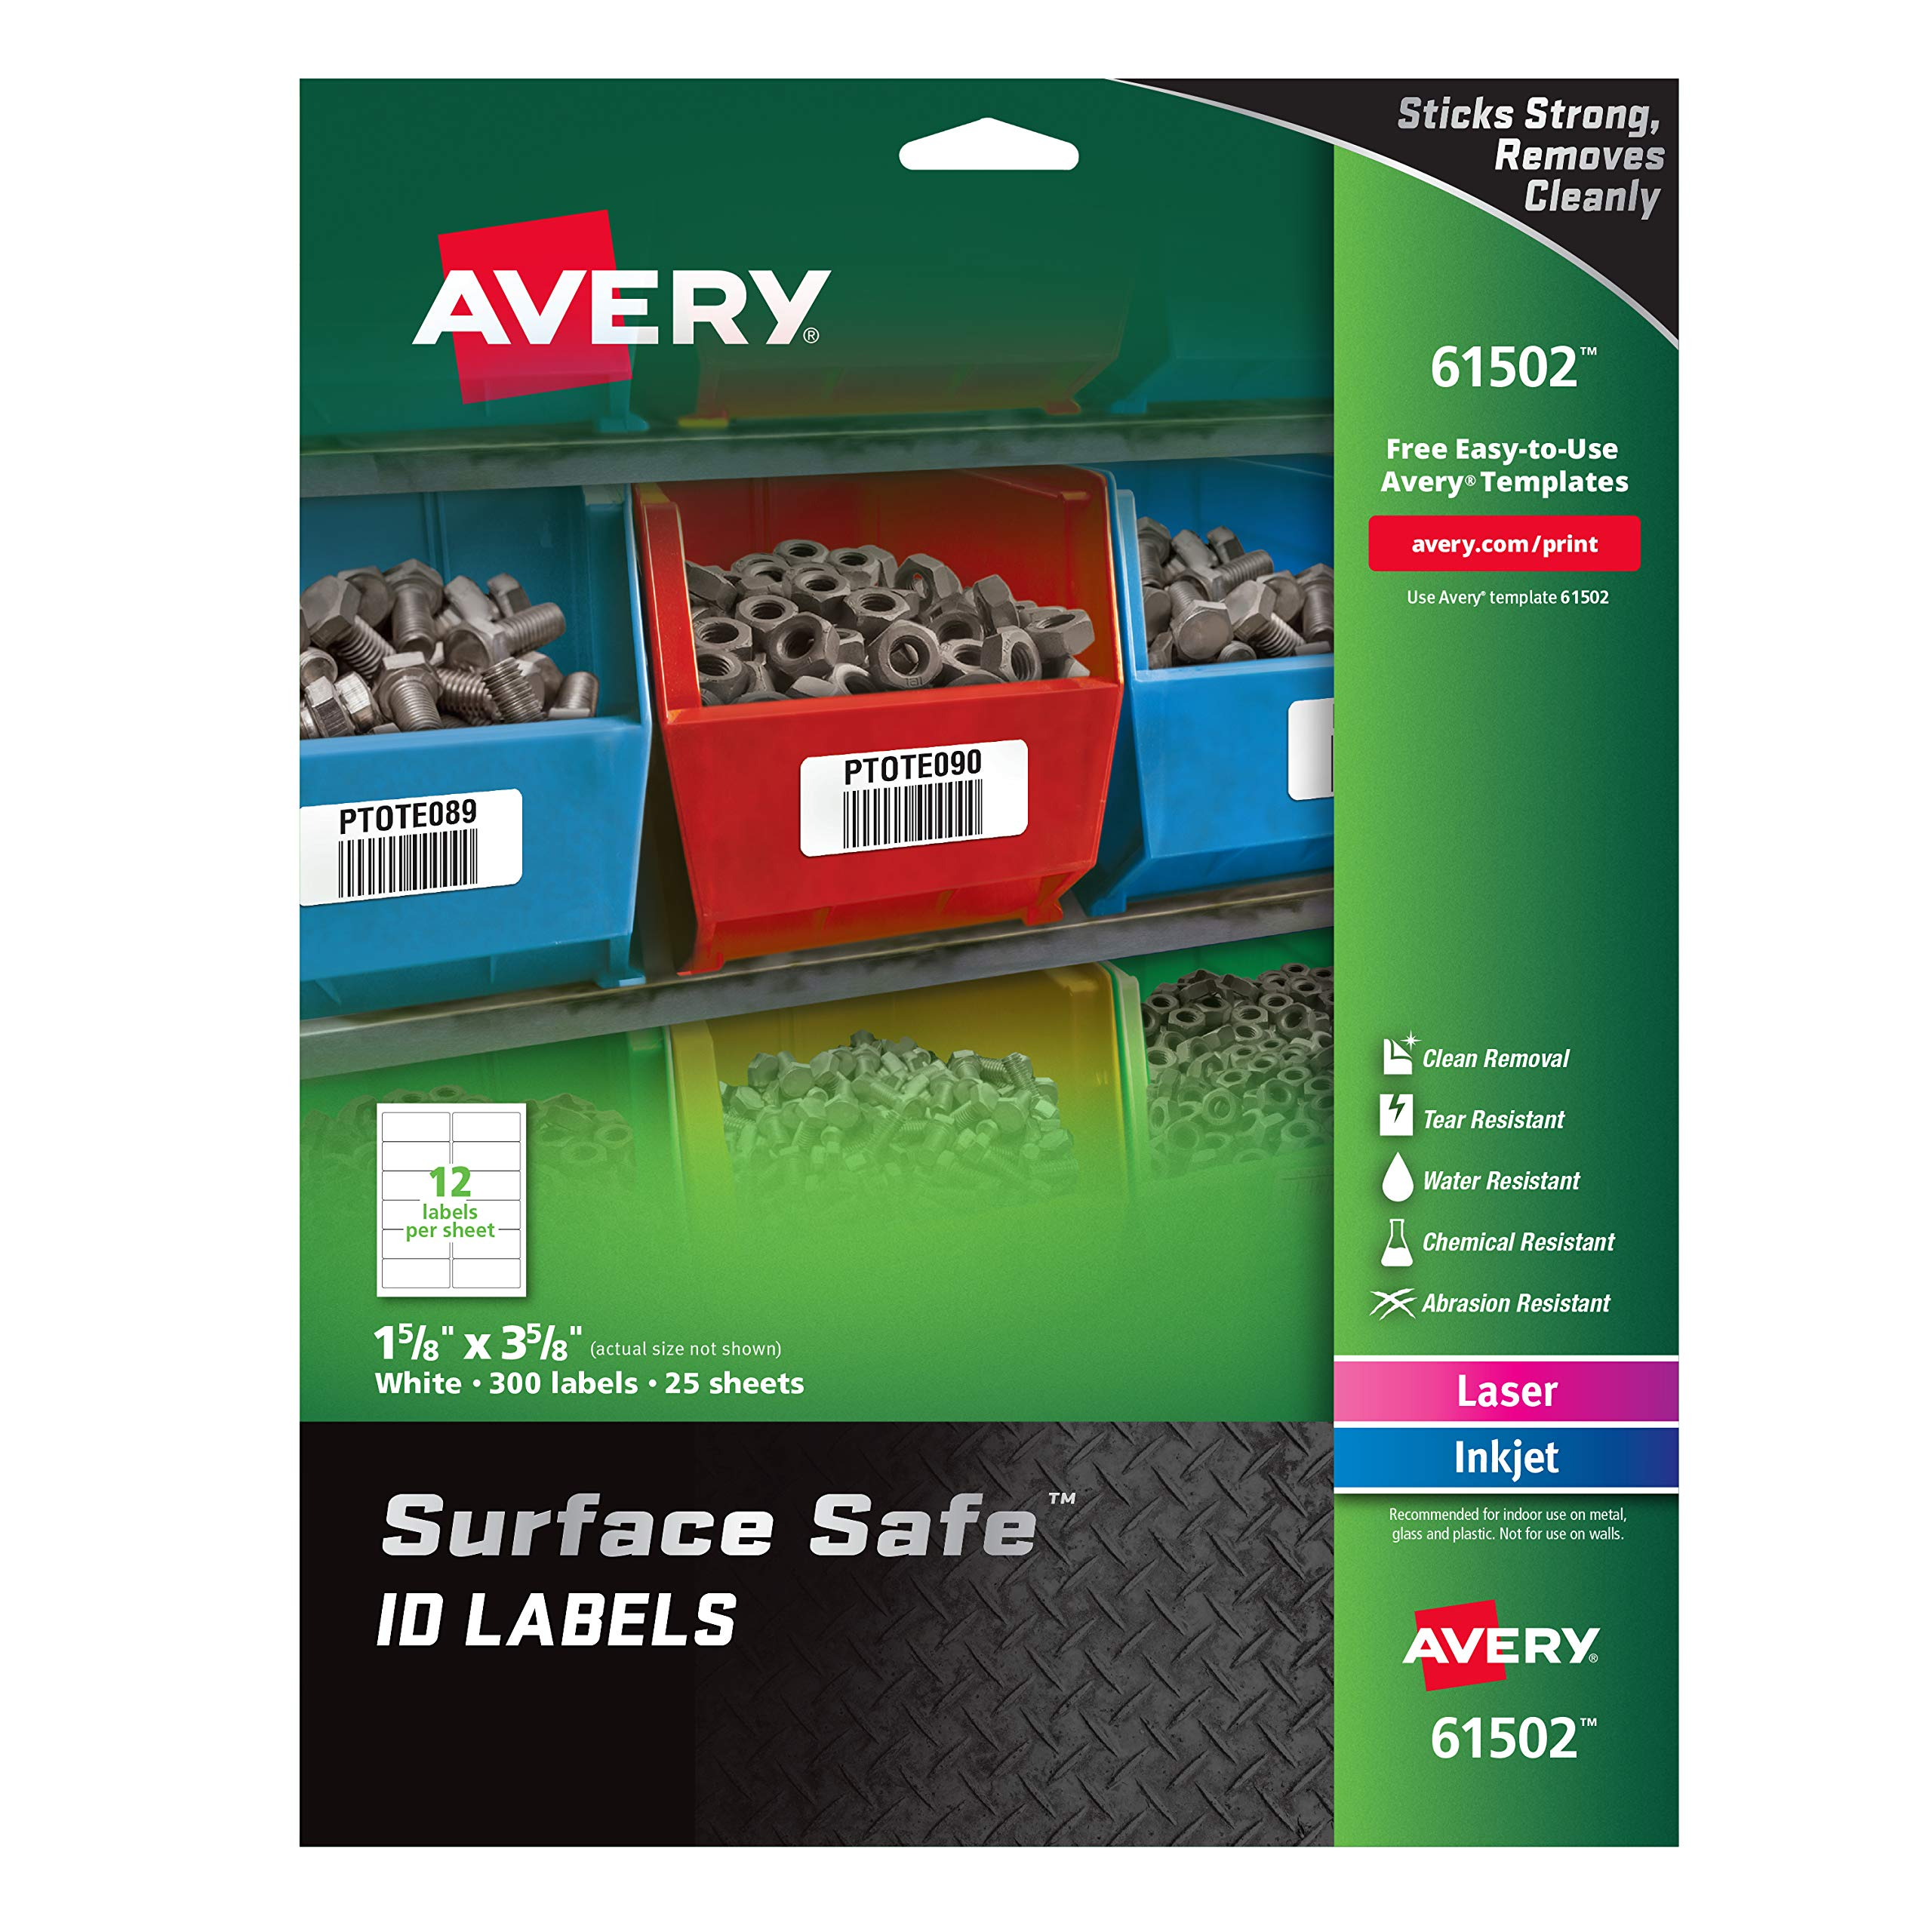 Avery Surface Safe Durable ID Labels, Removable Adhesive, Water Resistant, 1-5/8'' x 3-5/8'', 300 Labels (61502) by AVERY